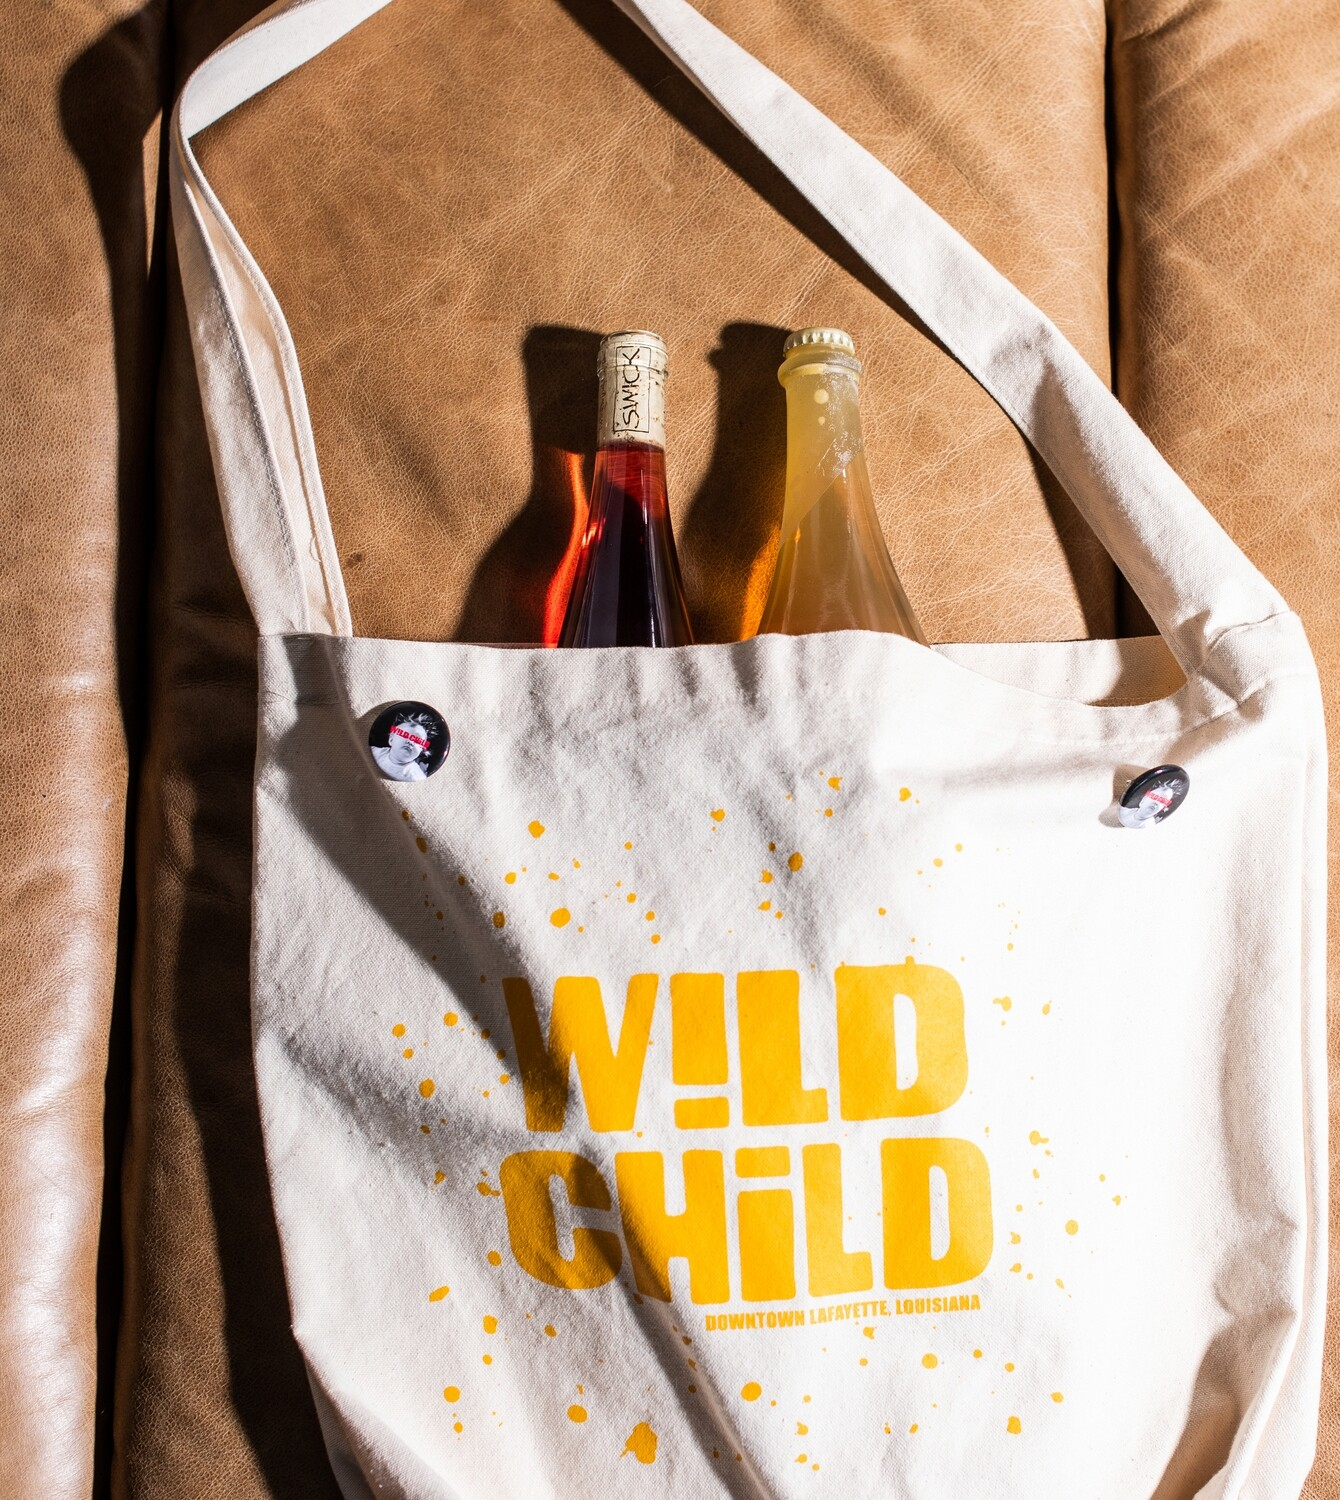 Curated 2 Bottles + the Wild Child Market Sack